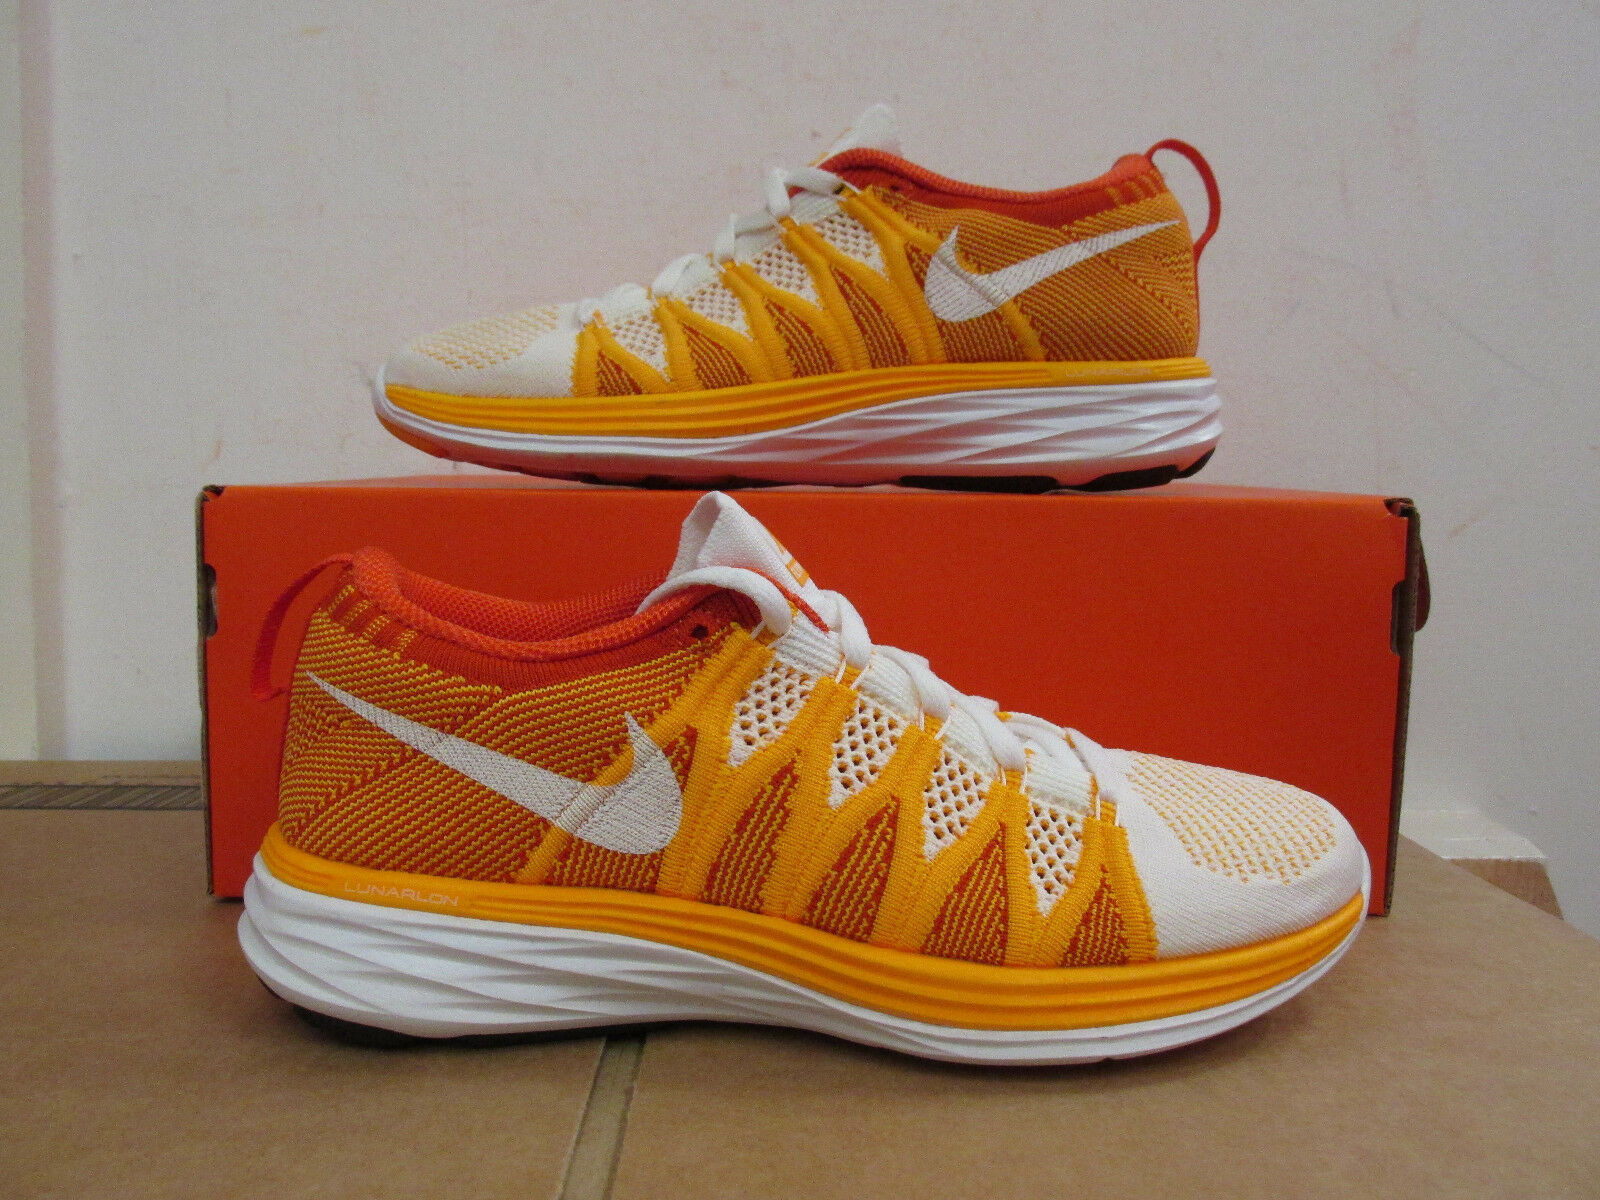 Nike Womens Flyknit Lunar 2 Running Trainers 620658 101 Shoes CLEARANCE best-selling model of the brand